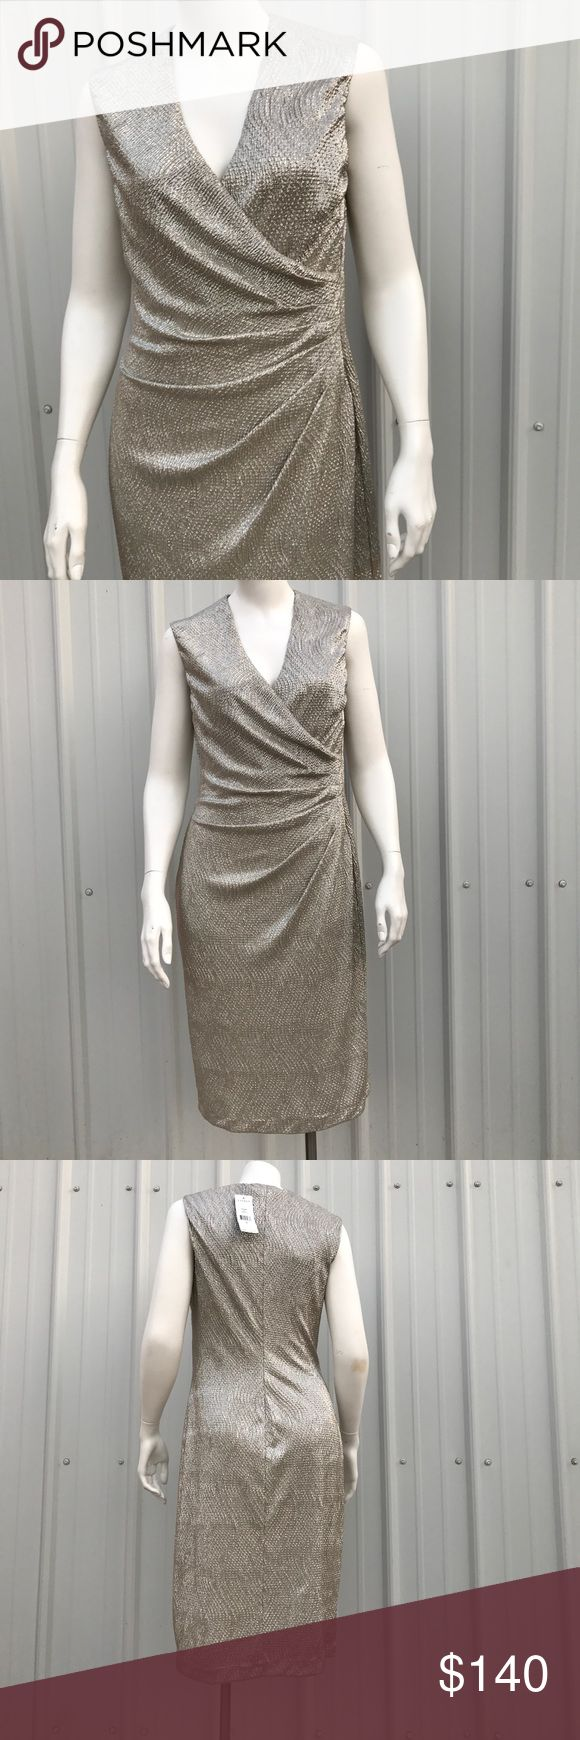 "Ralph Lauren Gold White Crinkle Metallic Dress Lauren Ralph Lauren. White & Gold Crinkled Metallic. V- neckline, cross over/ruched/pleated, sleeveless. Size 6. 100% Polyester, stretch. 15"" shoulder to shoulder. 17"" chest. 15"" waist. 17 1/2"" hip. 39"" length. #000390 Lauren Ralph Lauren Dresses Midi"